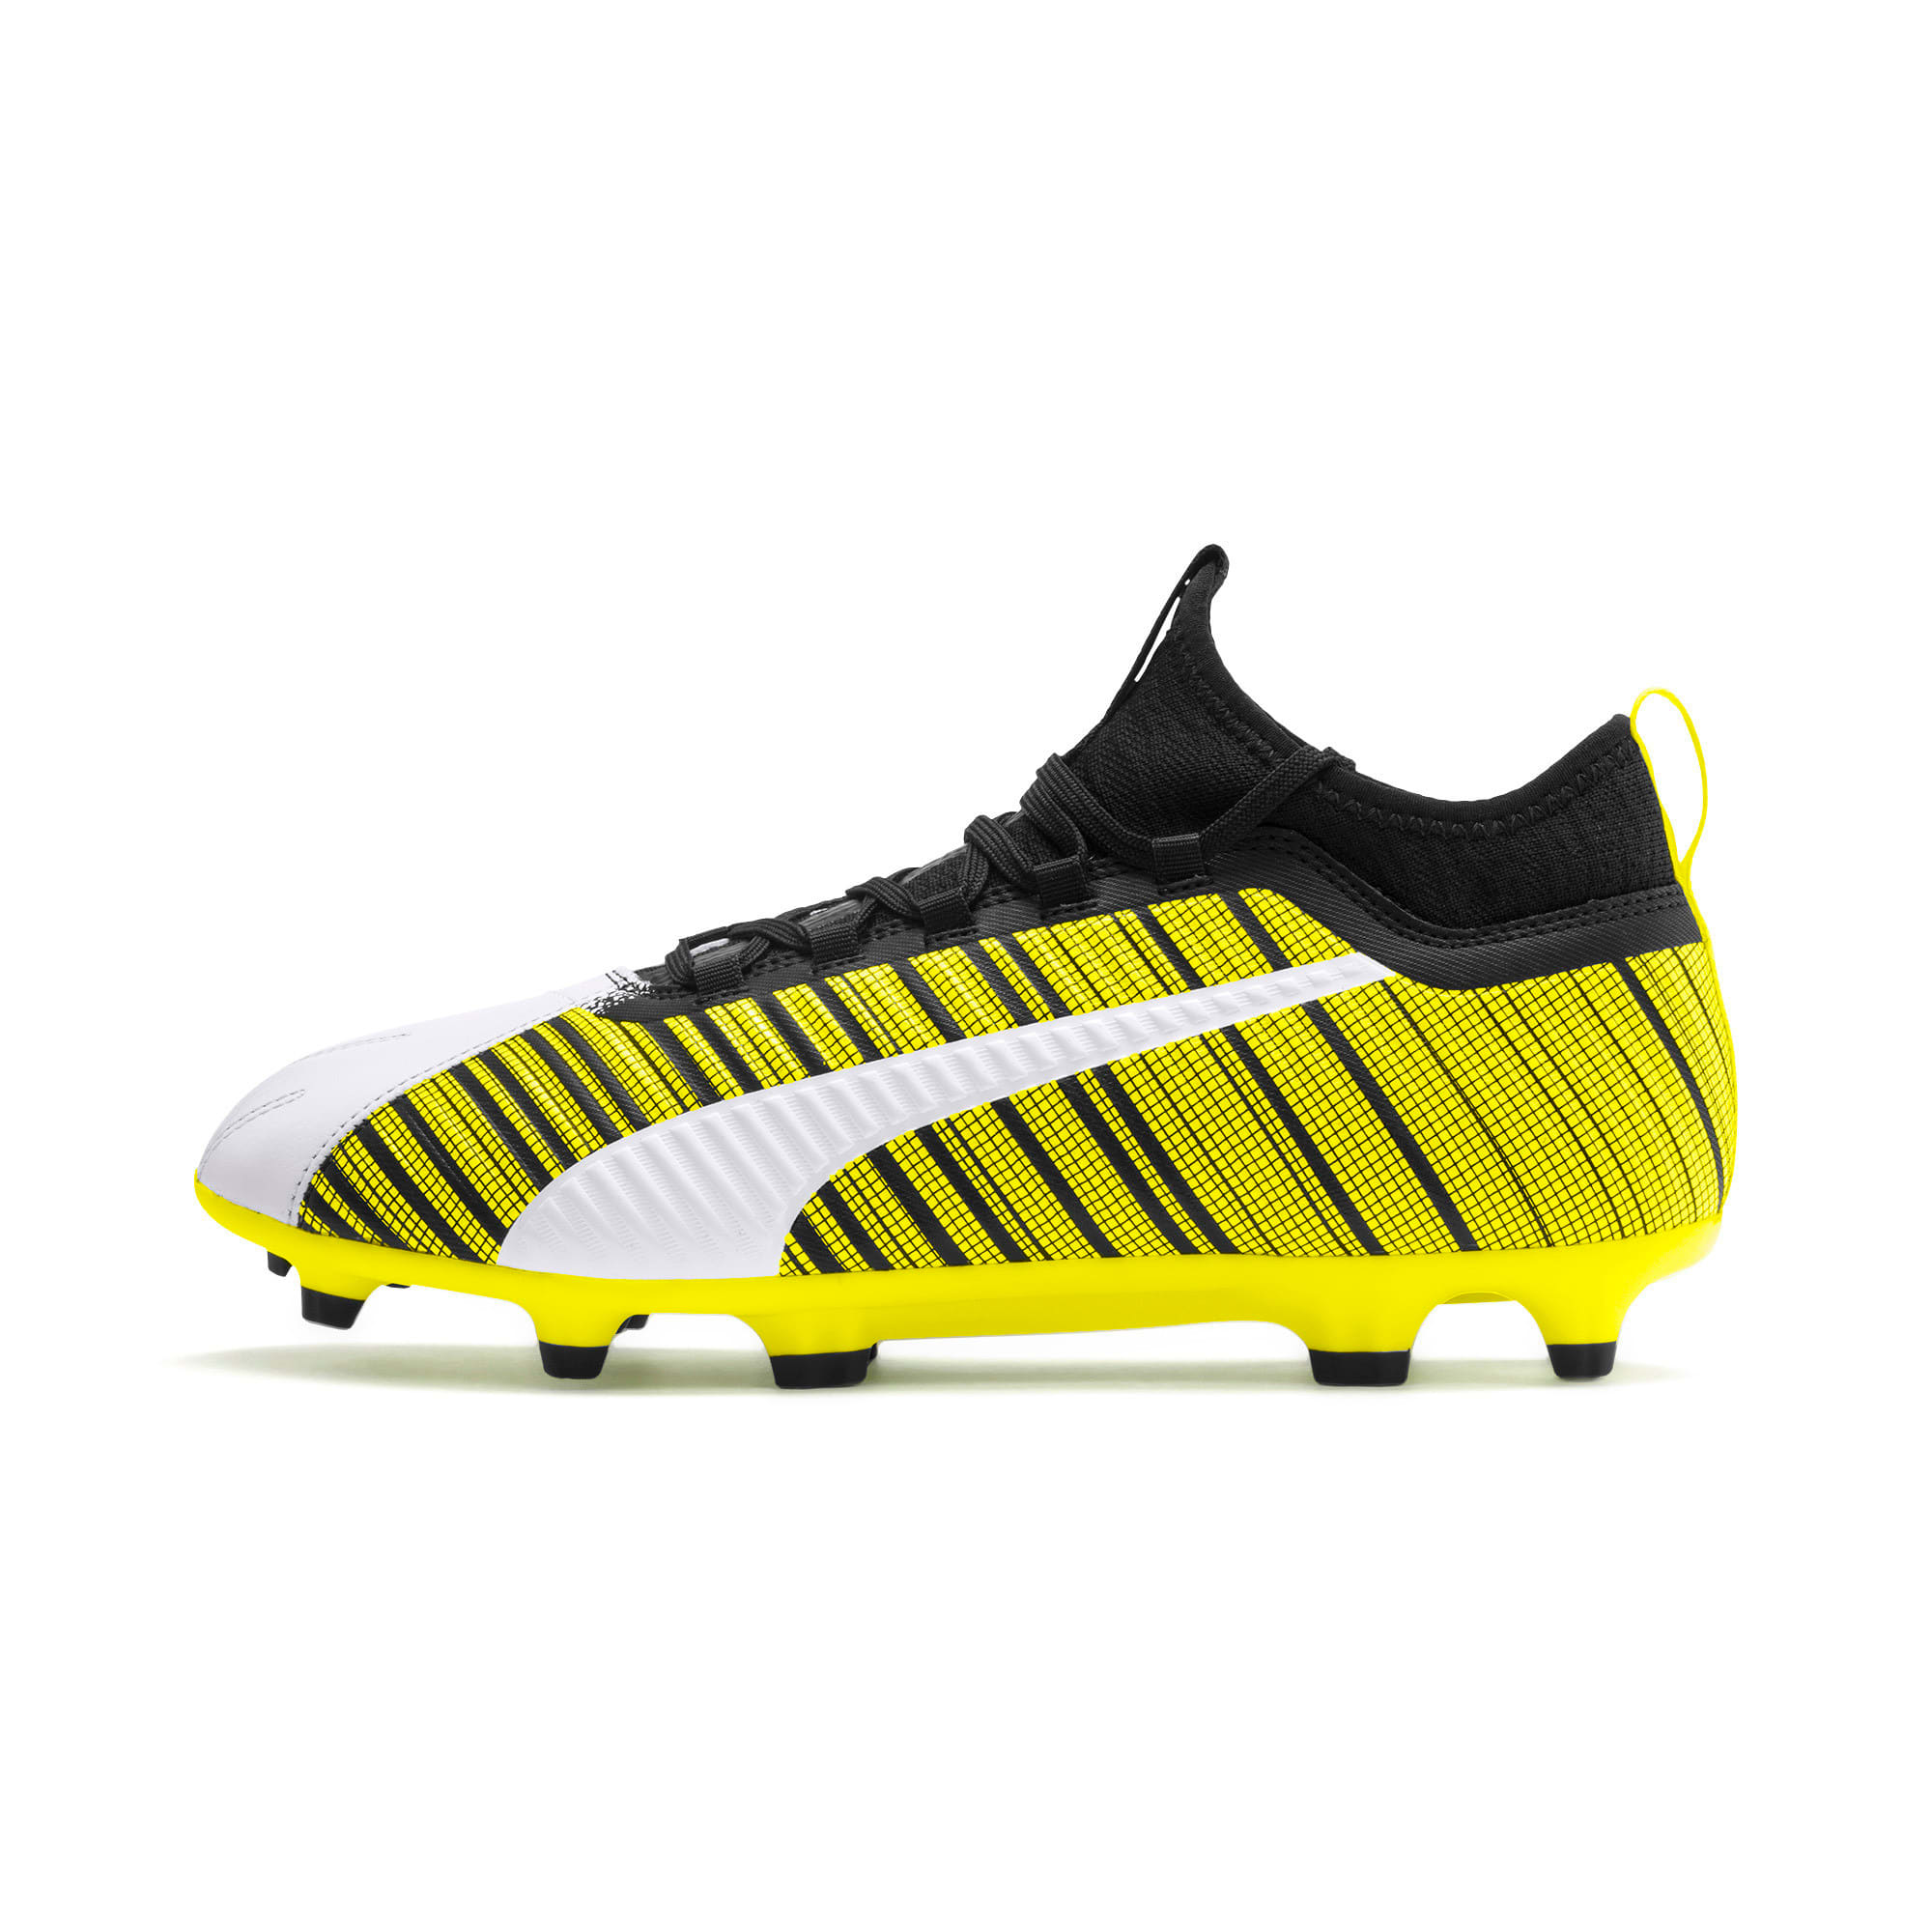 Thumbnail 1 of PUMA ONE 5.3 FG/AG voetbalschoenen voor heren, White-Black-Yellow Alert, medium